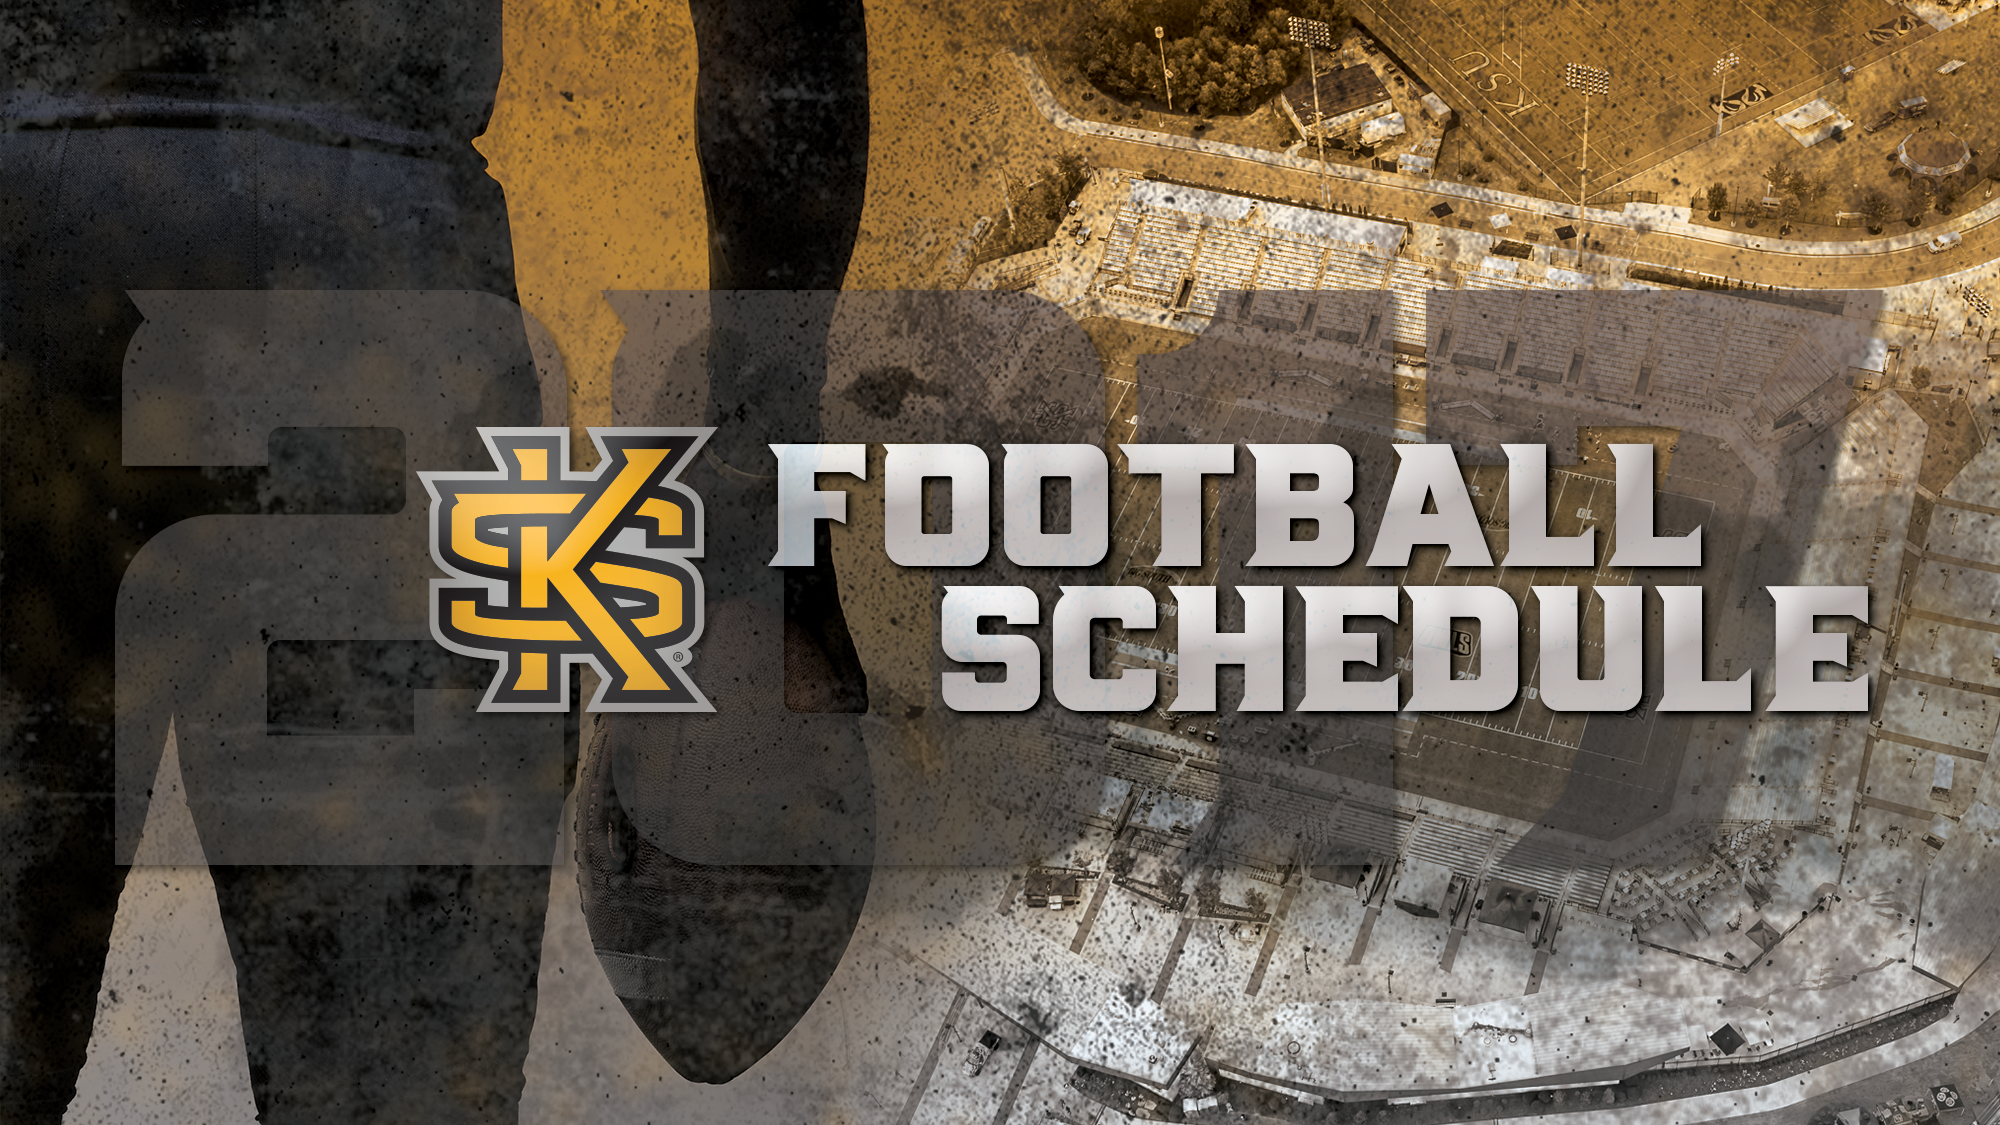 fb: owls announce 2017 football schedule - kennesaw state university